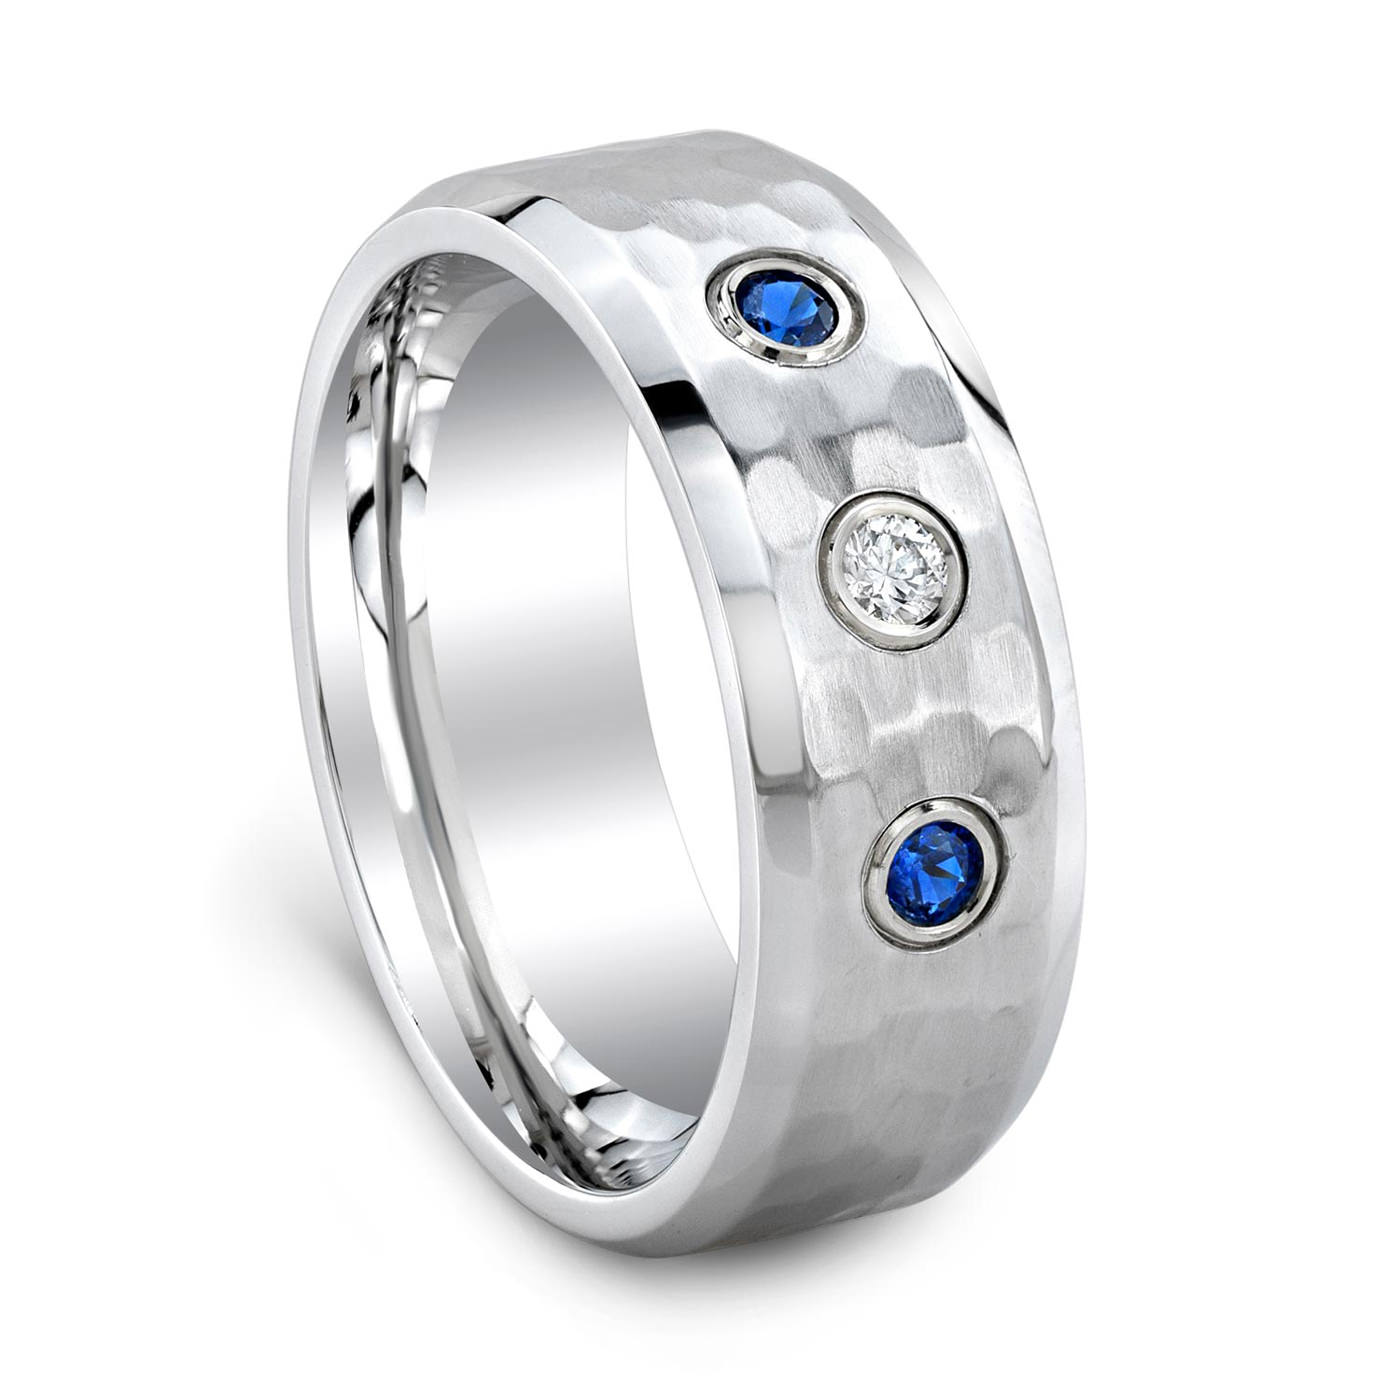 customizable mens 3 stone ring - design your own mans ring